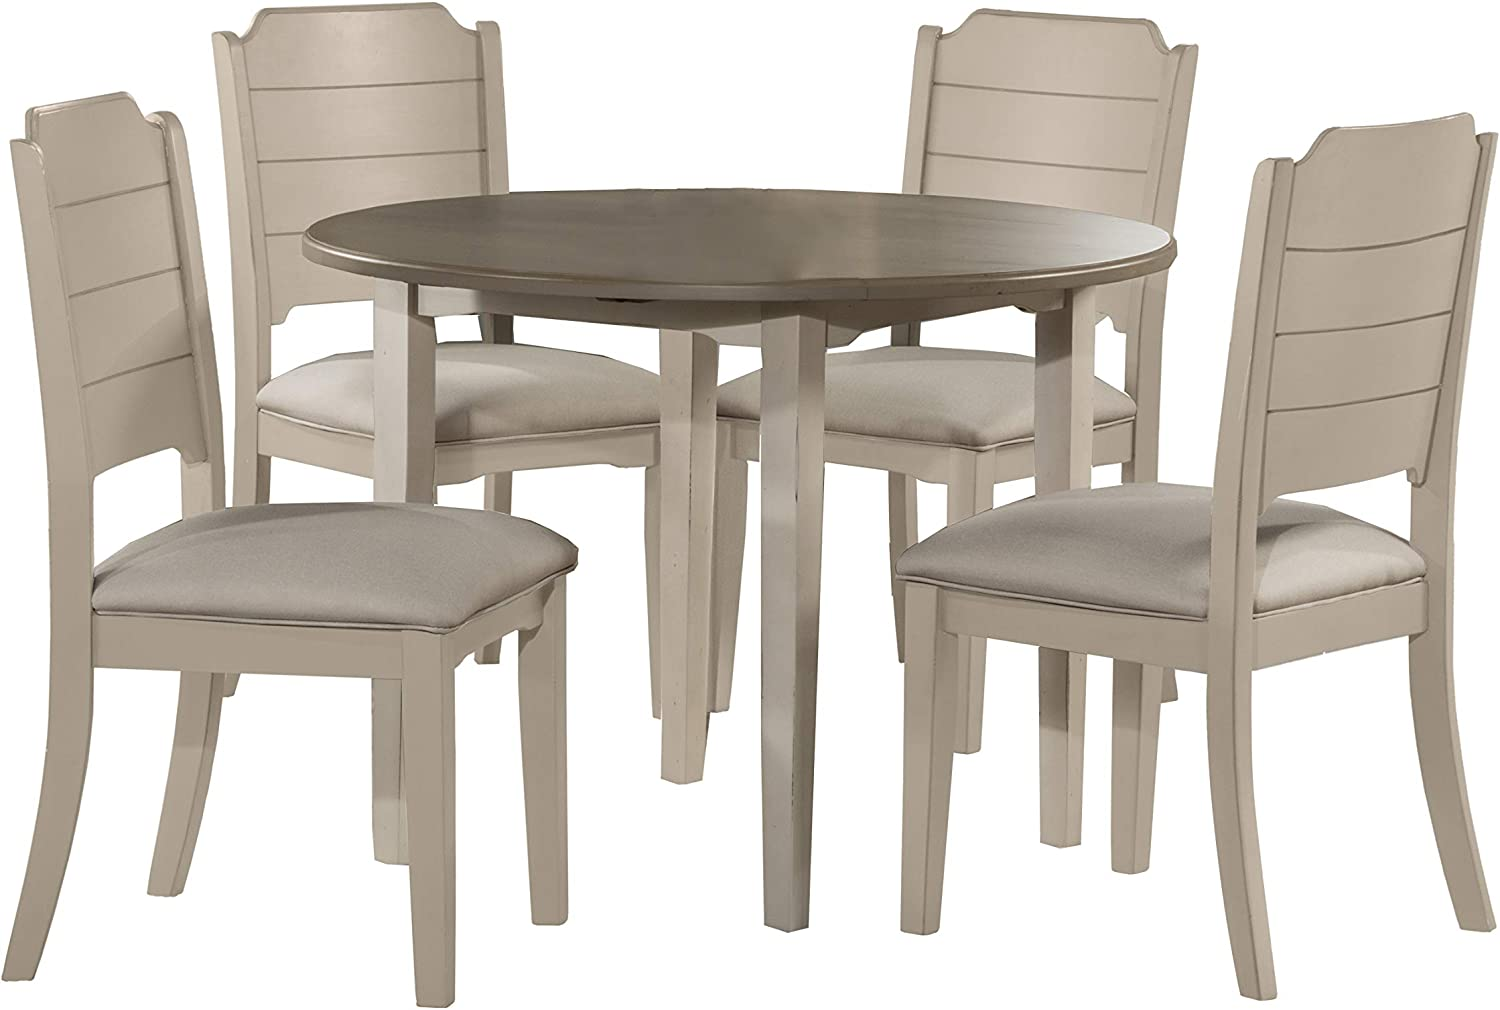 Hillsdale Furniture Round Drop Leaf Table 5 Piece Dining Set Sea White Table Chair Sets